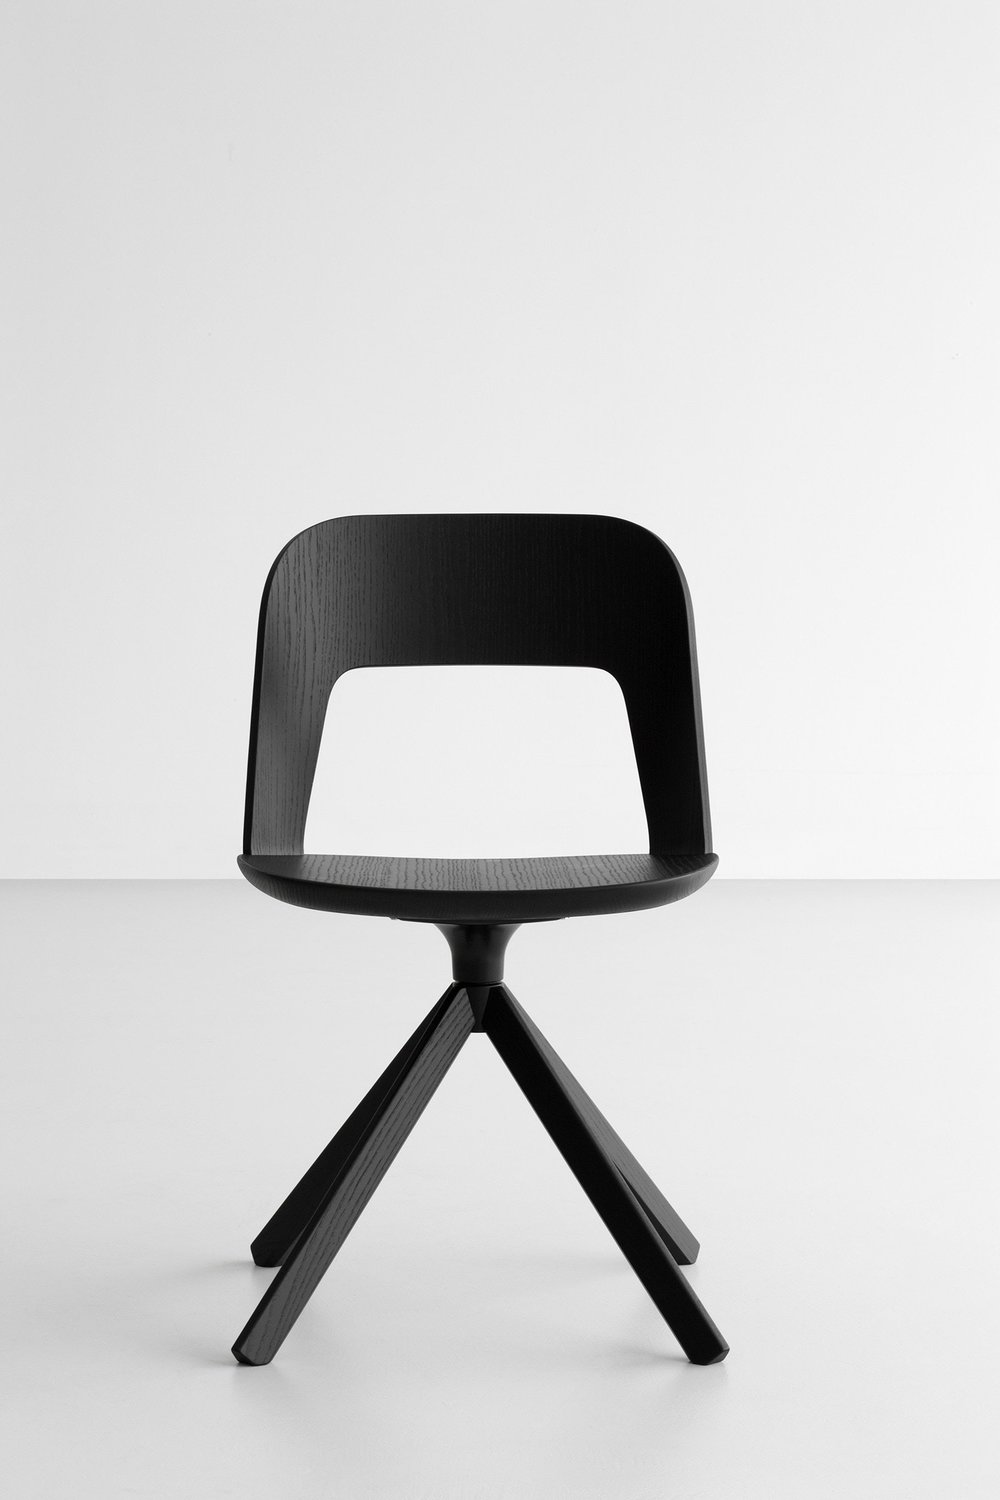 Arco Chair designed by Francesco Rota